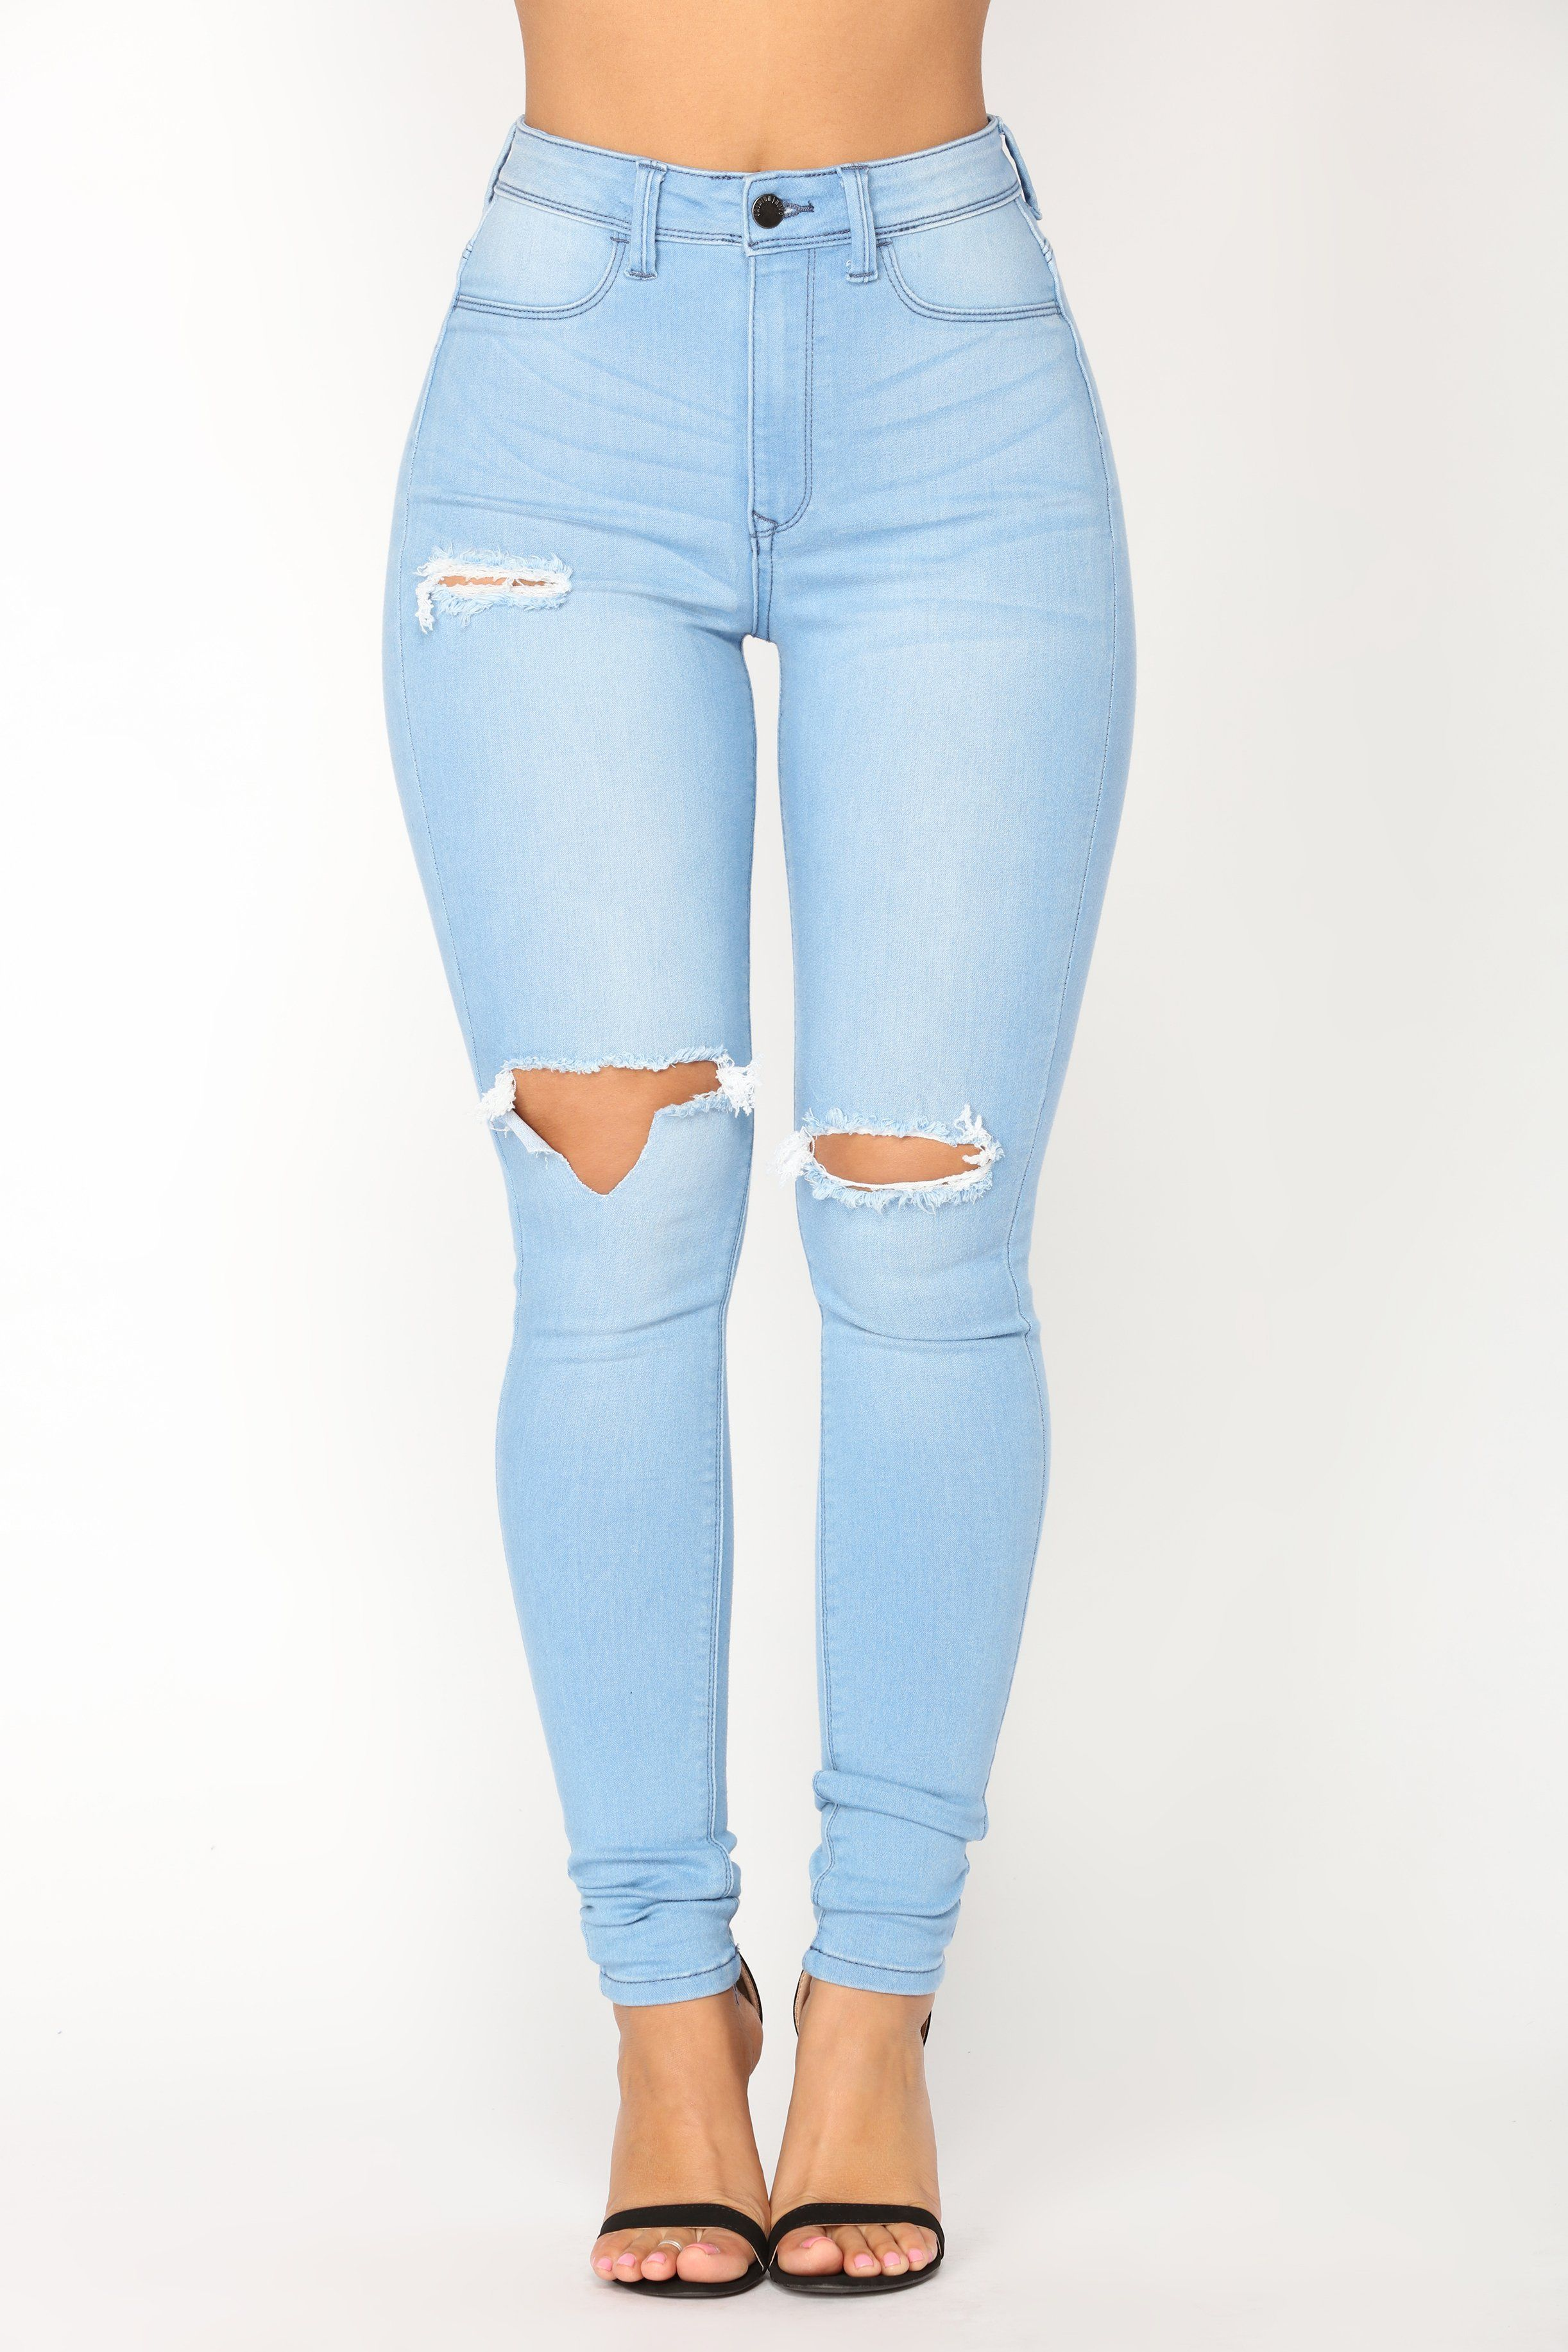 10a7c38593 Available In Light Blue Wash High Rise Stretch Denim Distressed 31